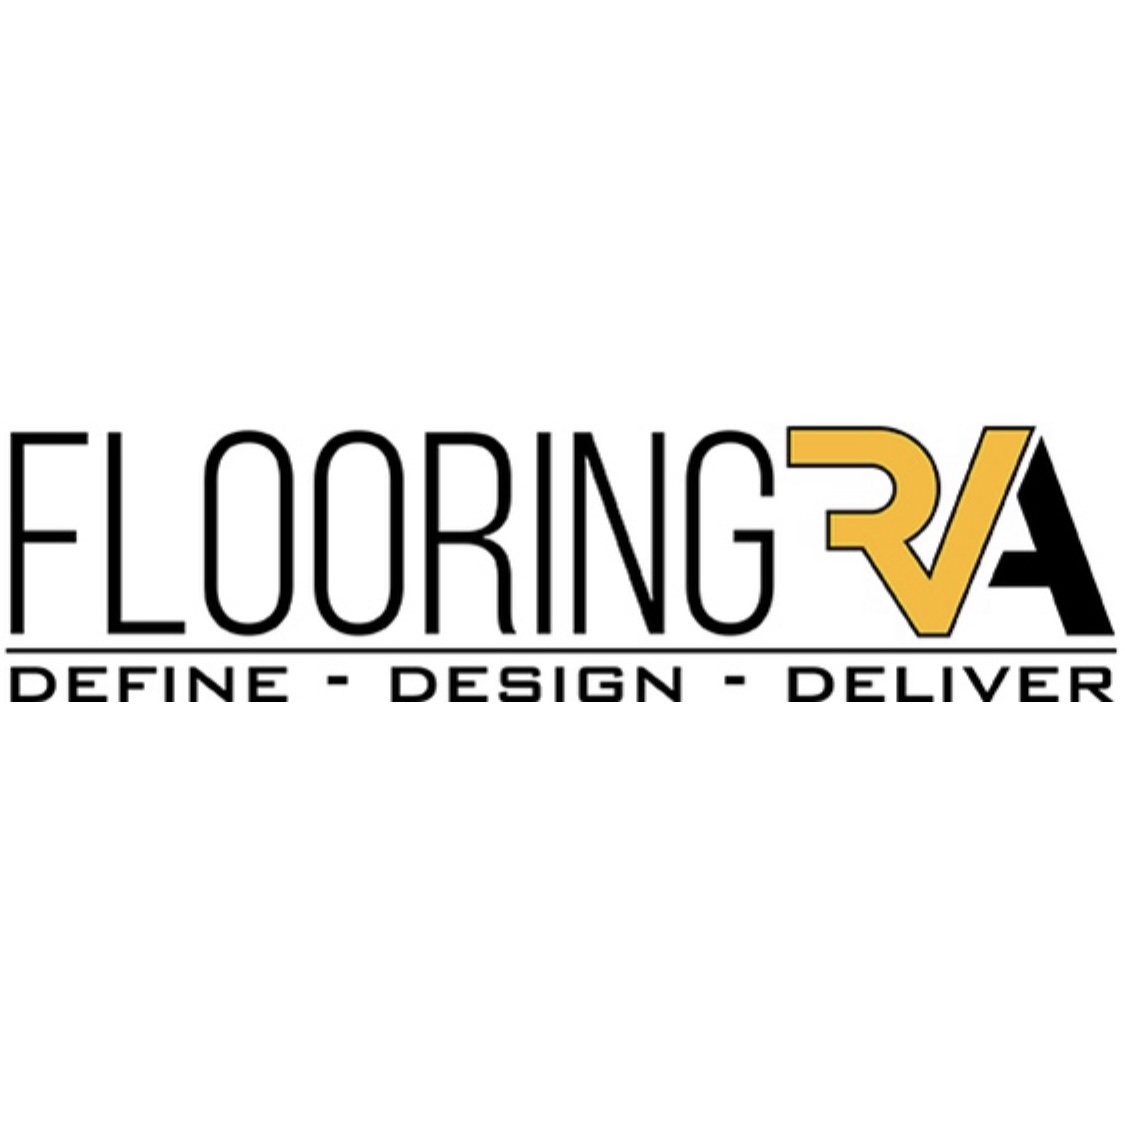 Flooring RVA Define-Design-Deliver.jpg